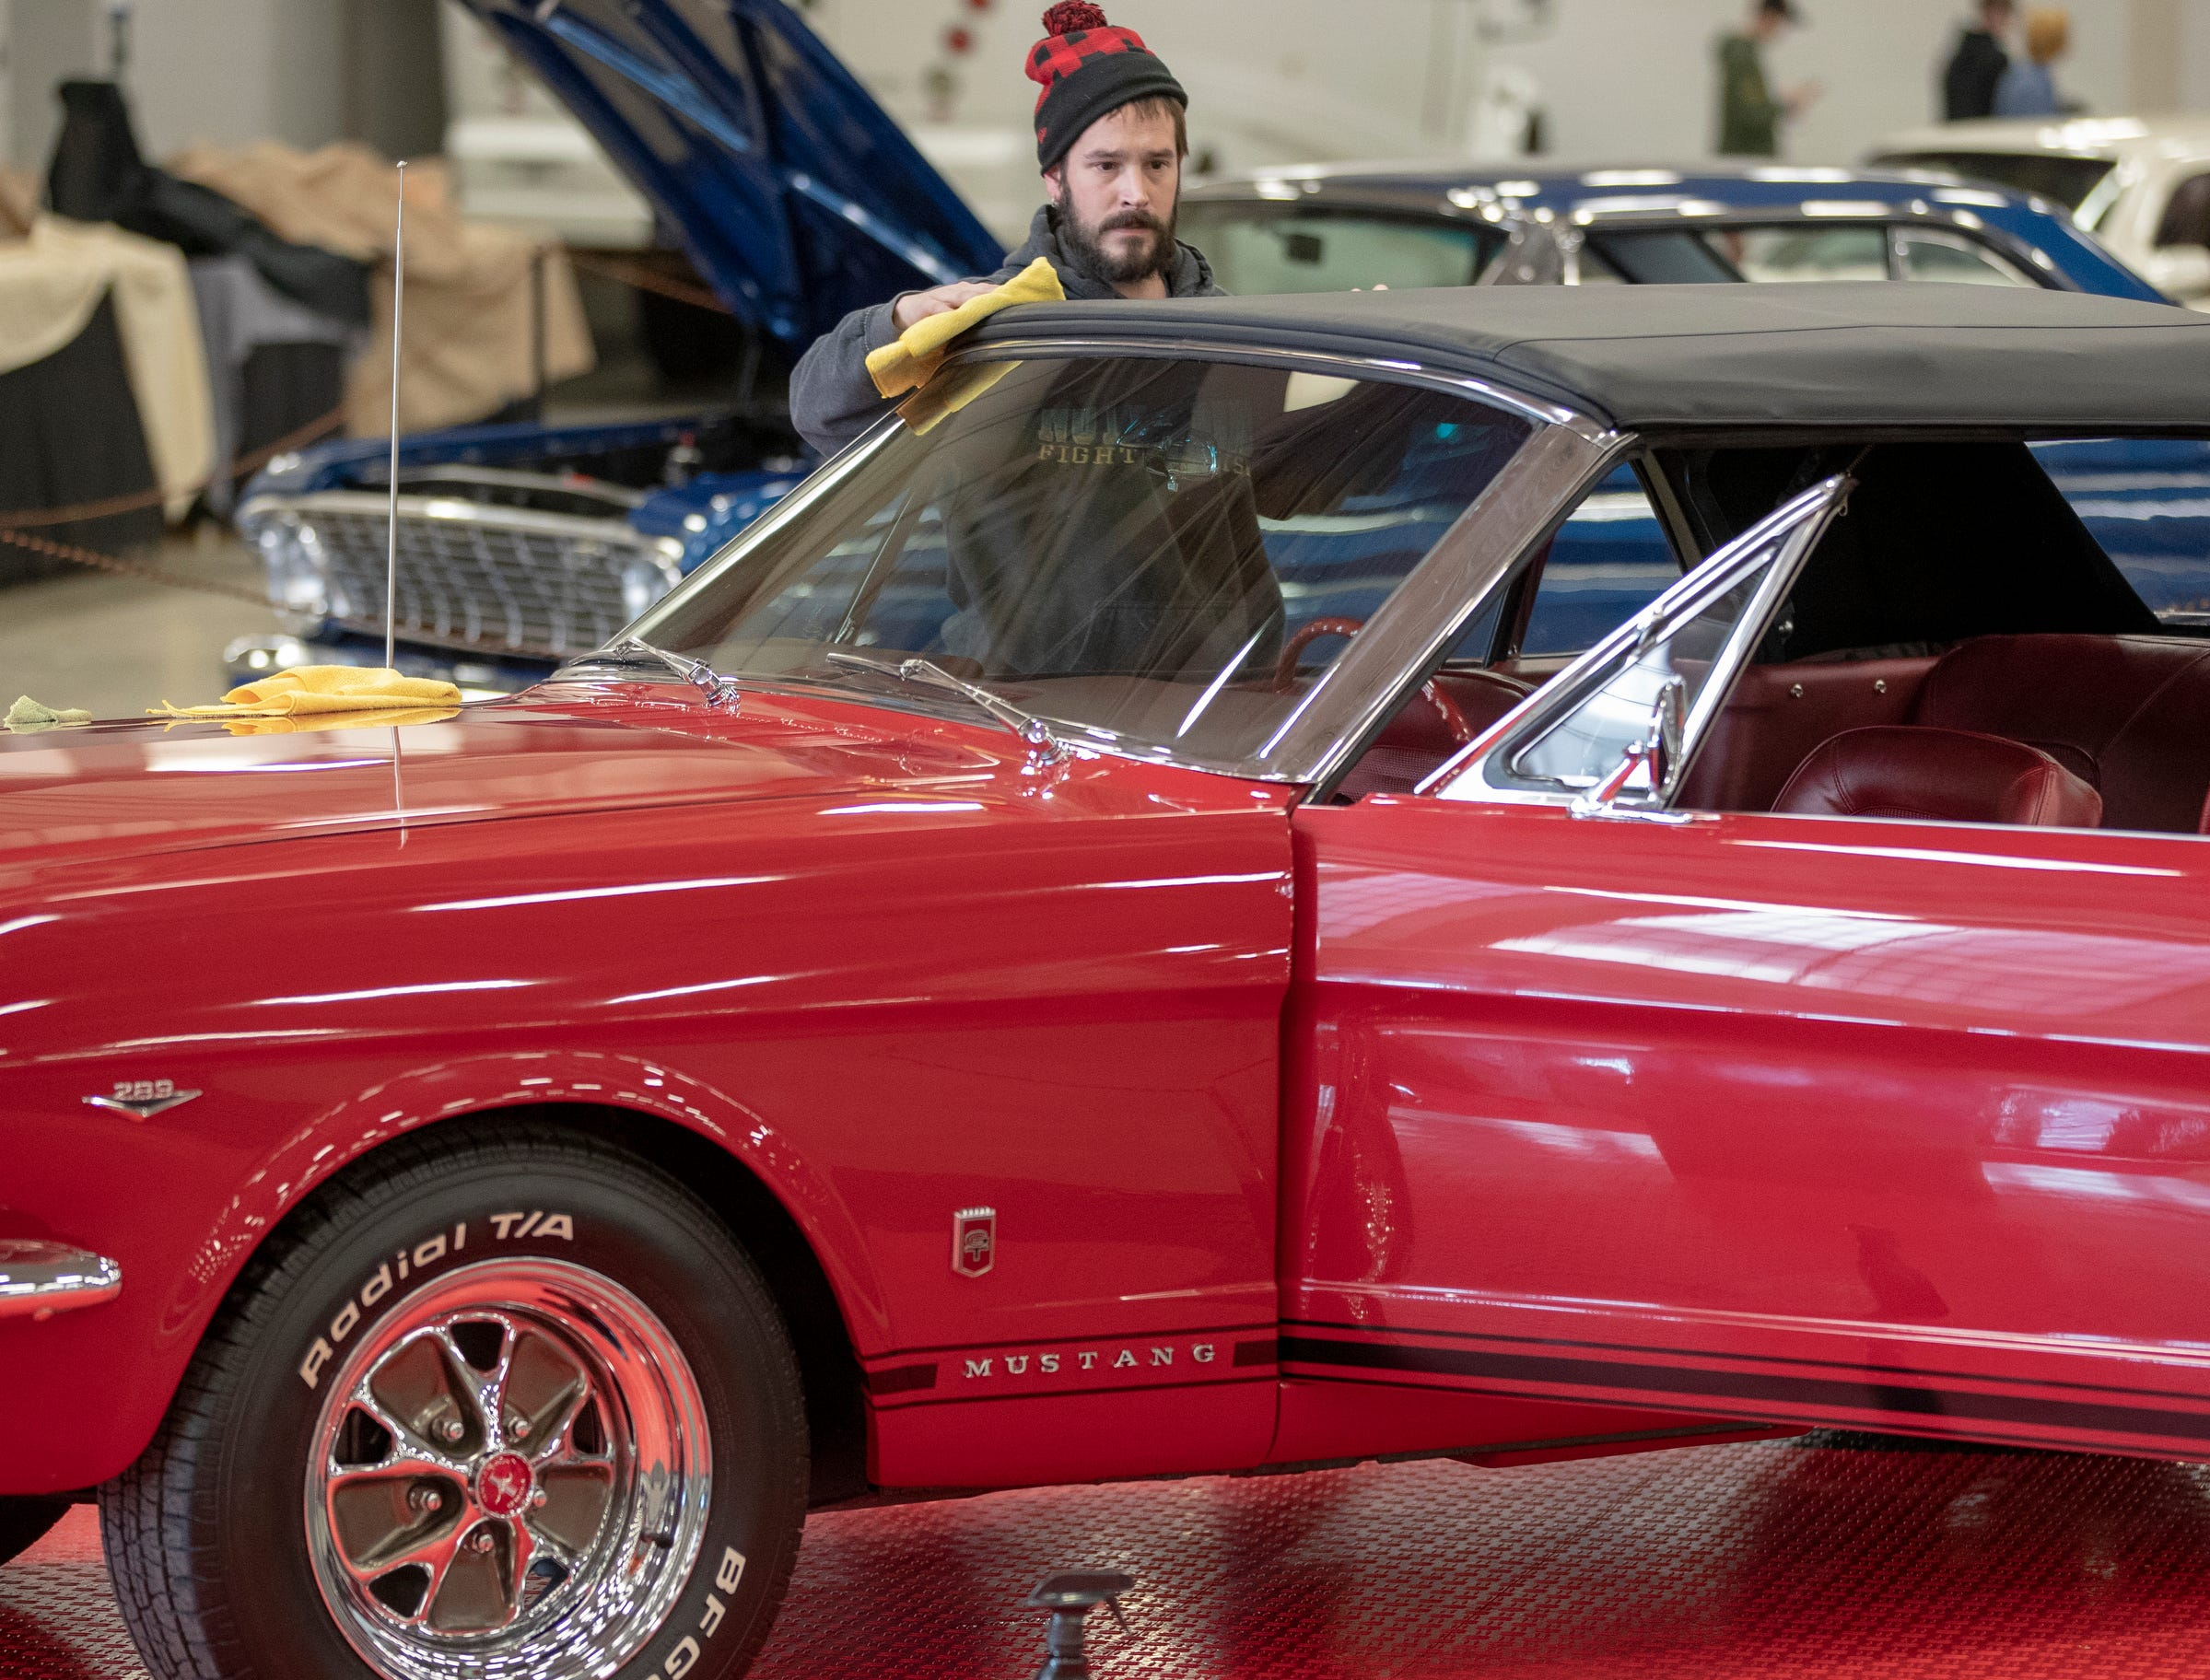 Kyle Huffaker works on polishing a 1966 Ford Mustang, at World of Wheels at the Indiana State Fairgrounds, Indianapolis, Friday, Feb. 8, 2019. The event runs through the weekend and features four big rooms of stock and heavily customized cars.